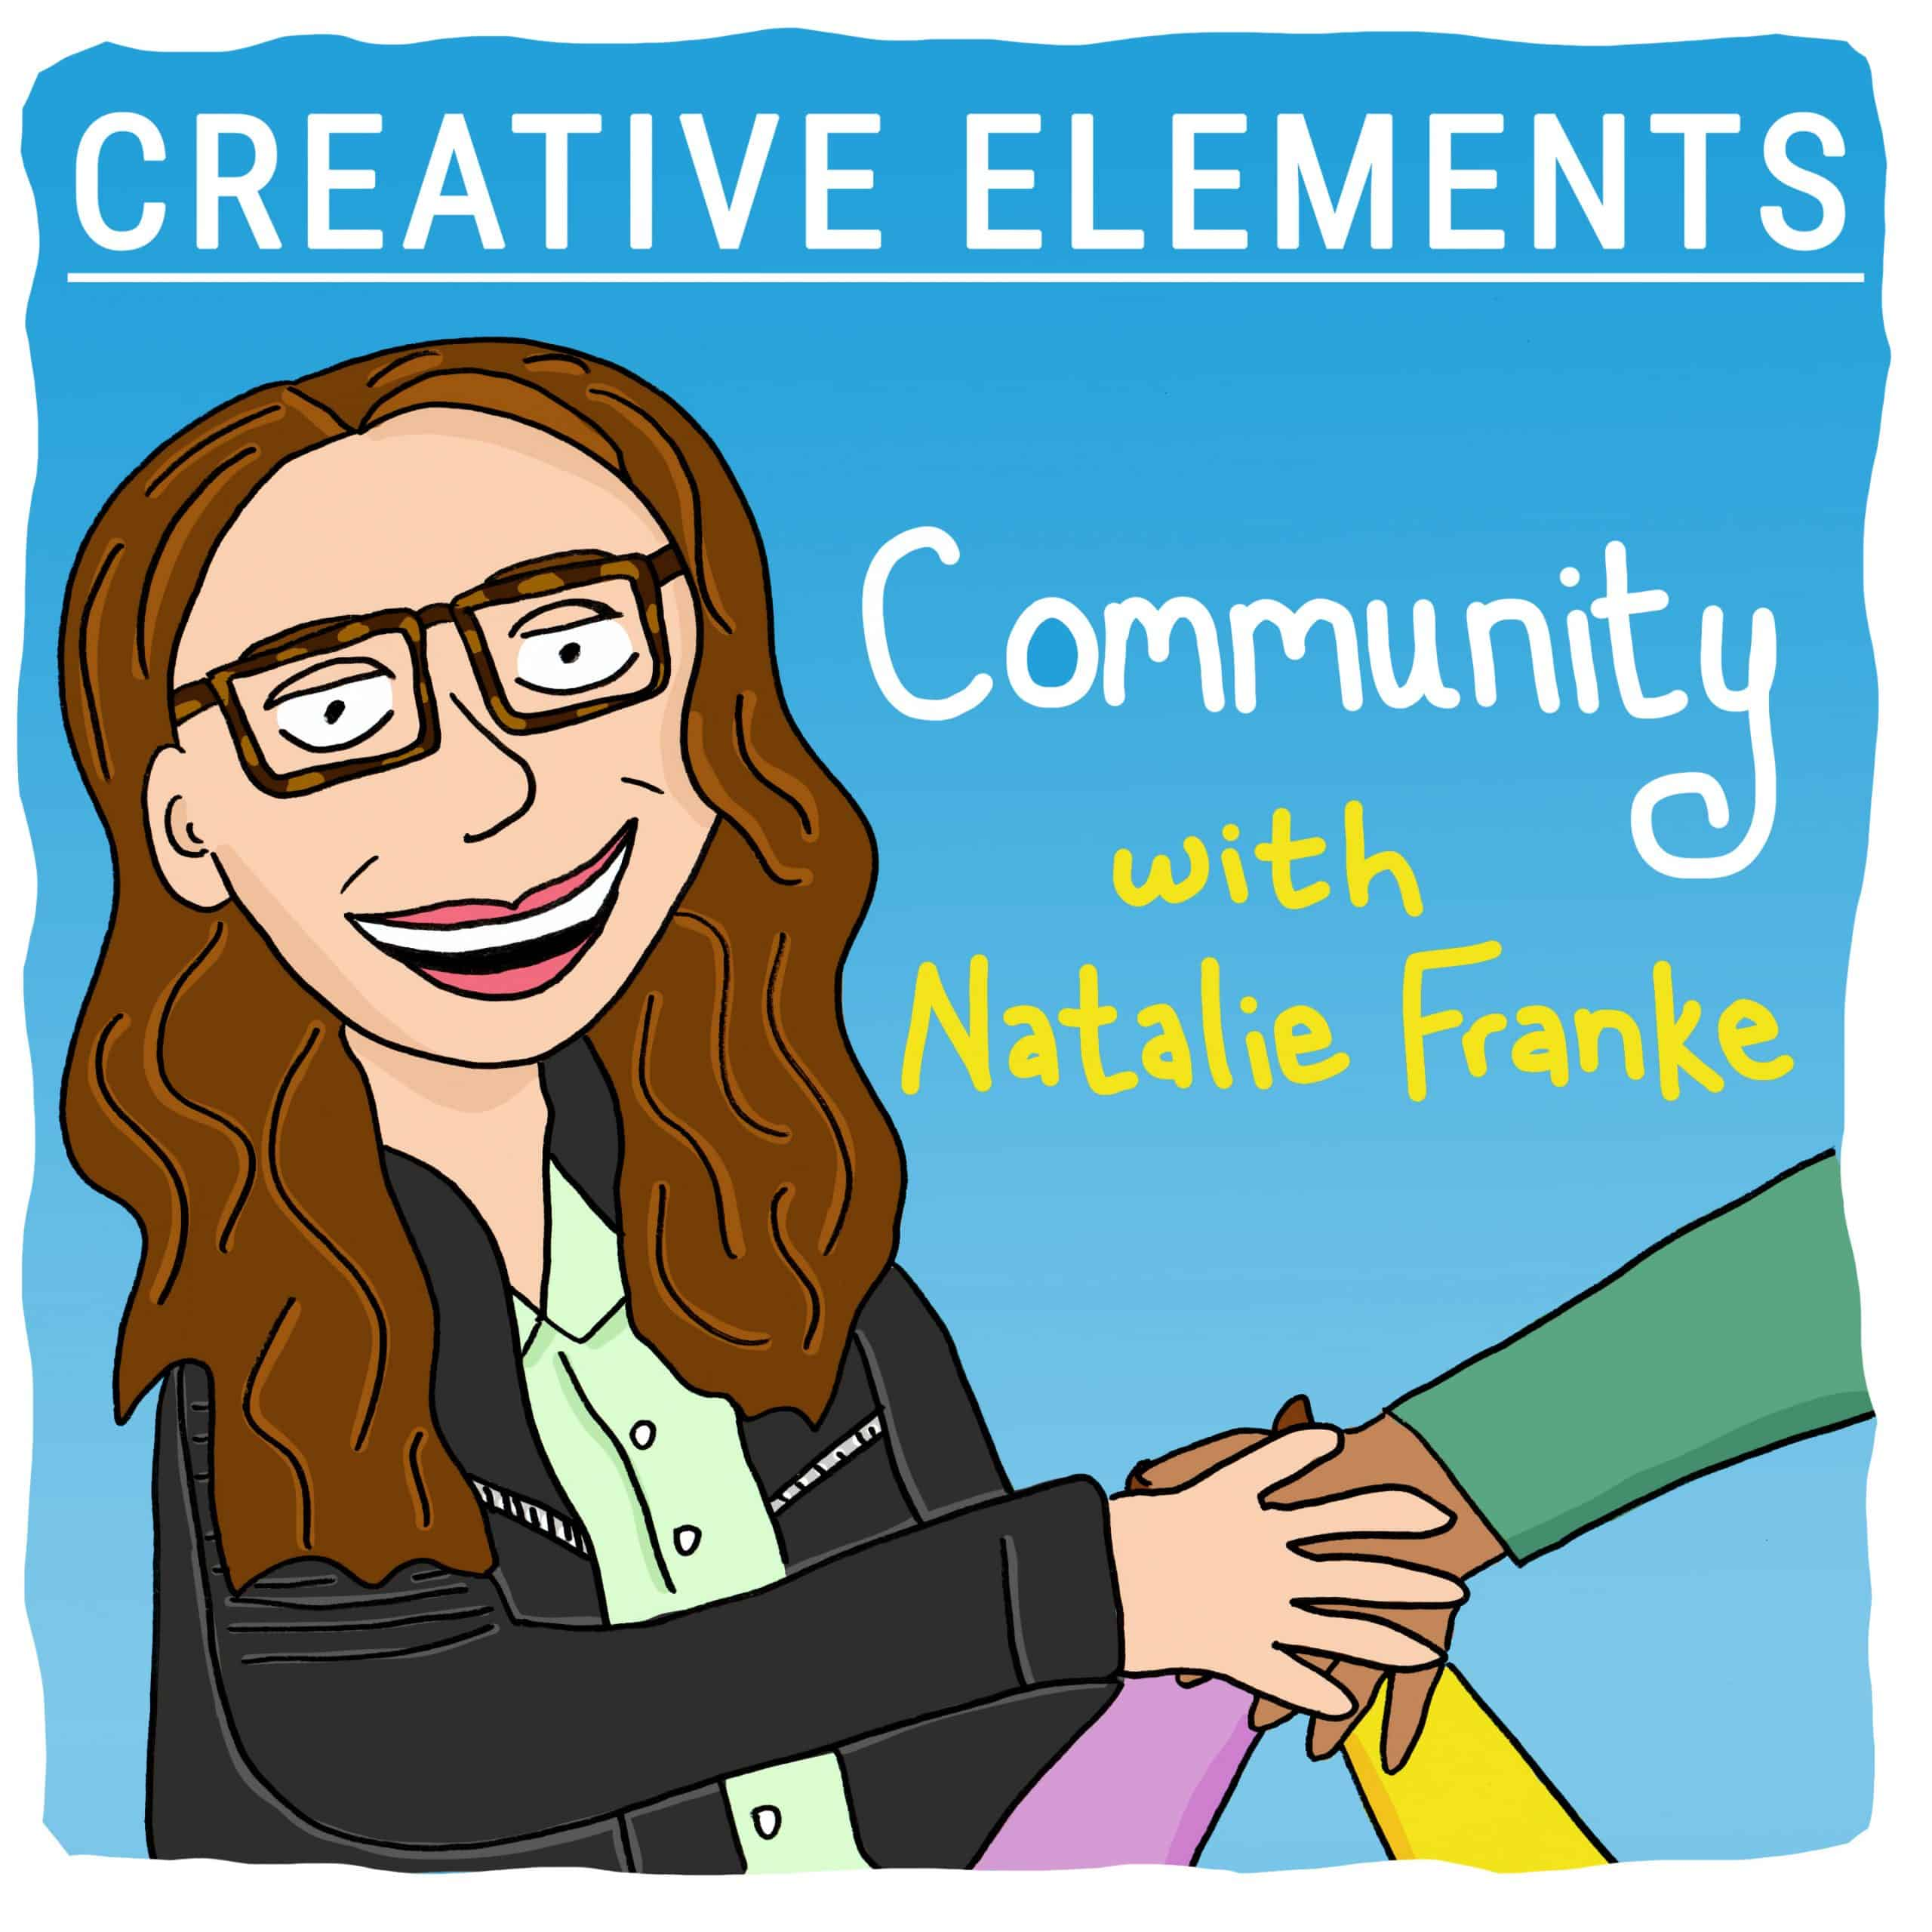 Natalie Franke on Creative Elements